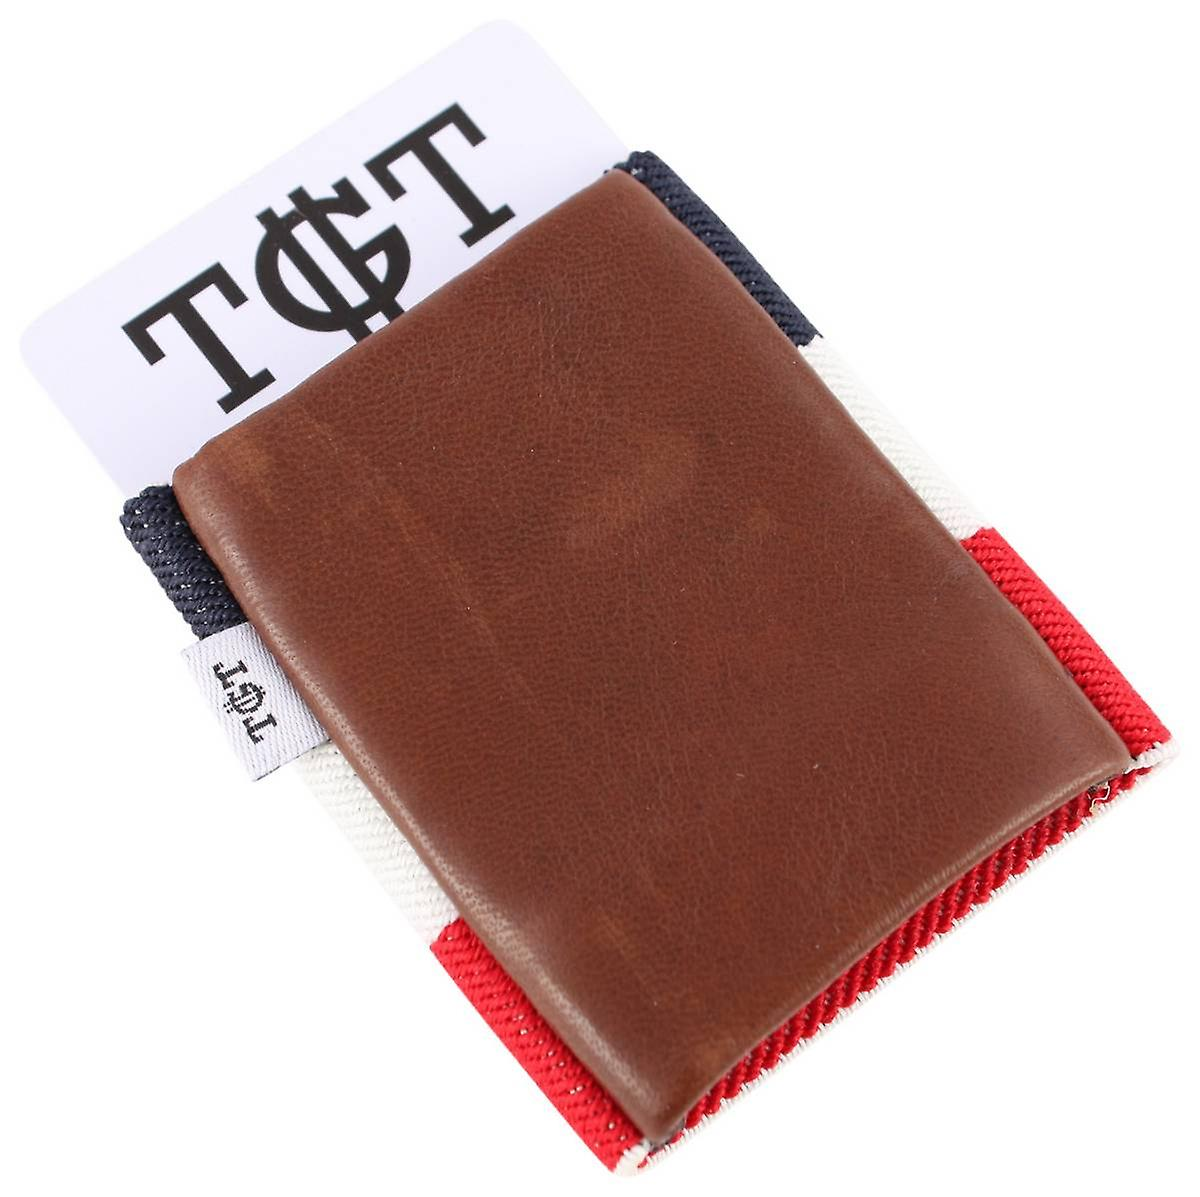 TGT Tight Wallets Americana 2.0 Elastic Card Holder - Brown/Multi-colour